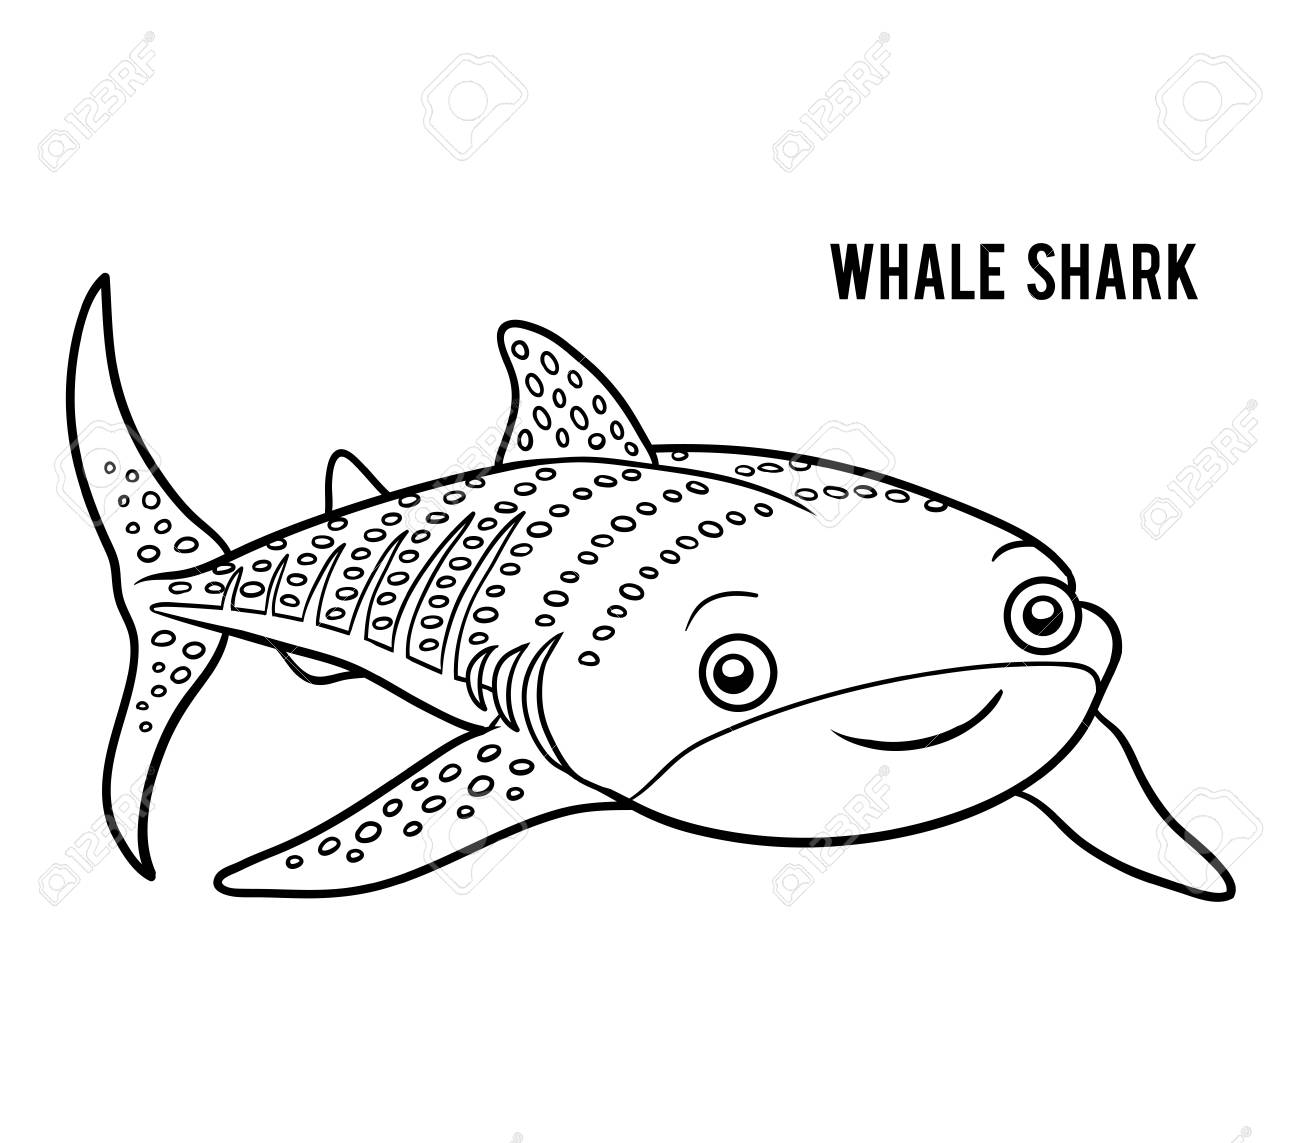 Coloring Book For Children, Whale Shark Royalty Free Cliparts ...